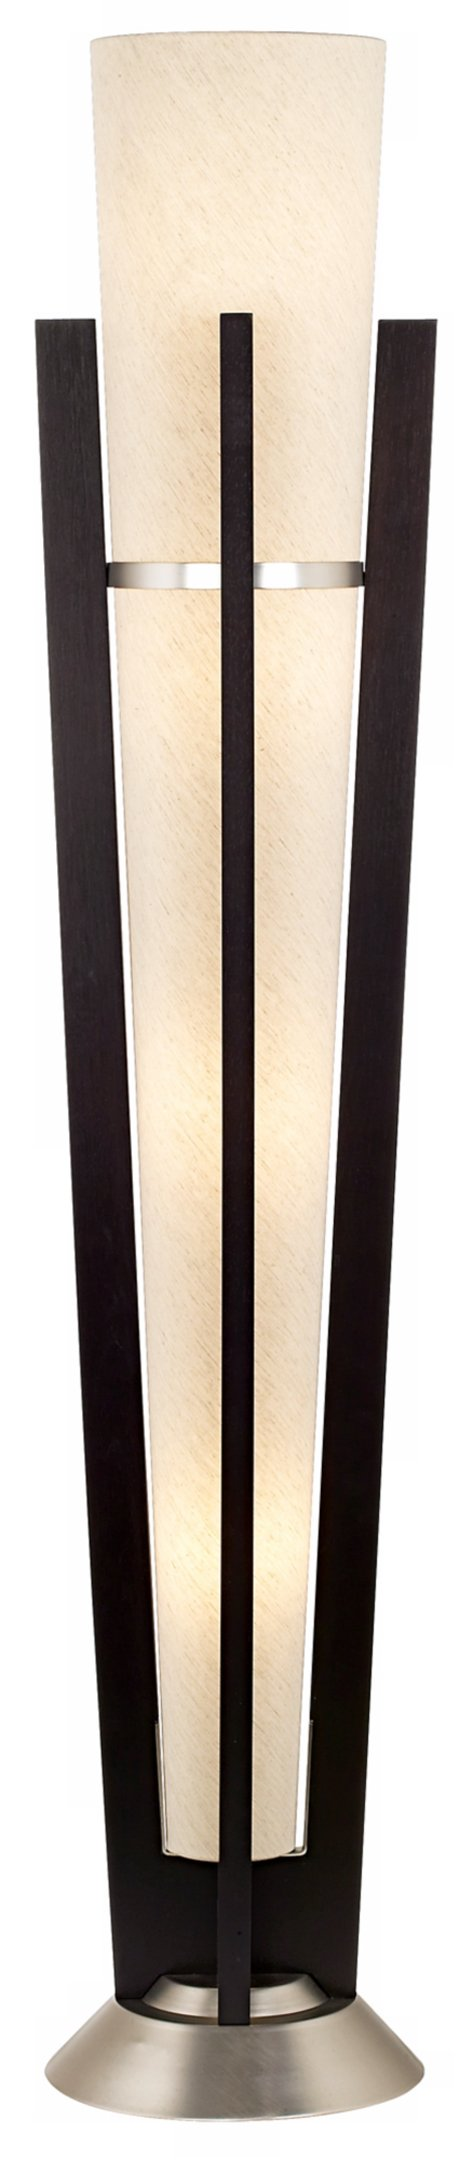 Espresso Trophy Uplight Floor Lamp